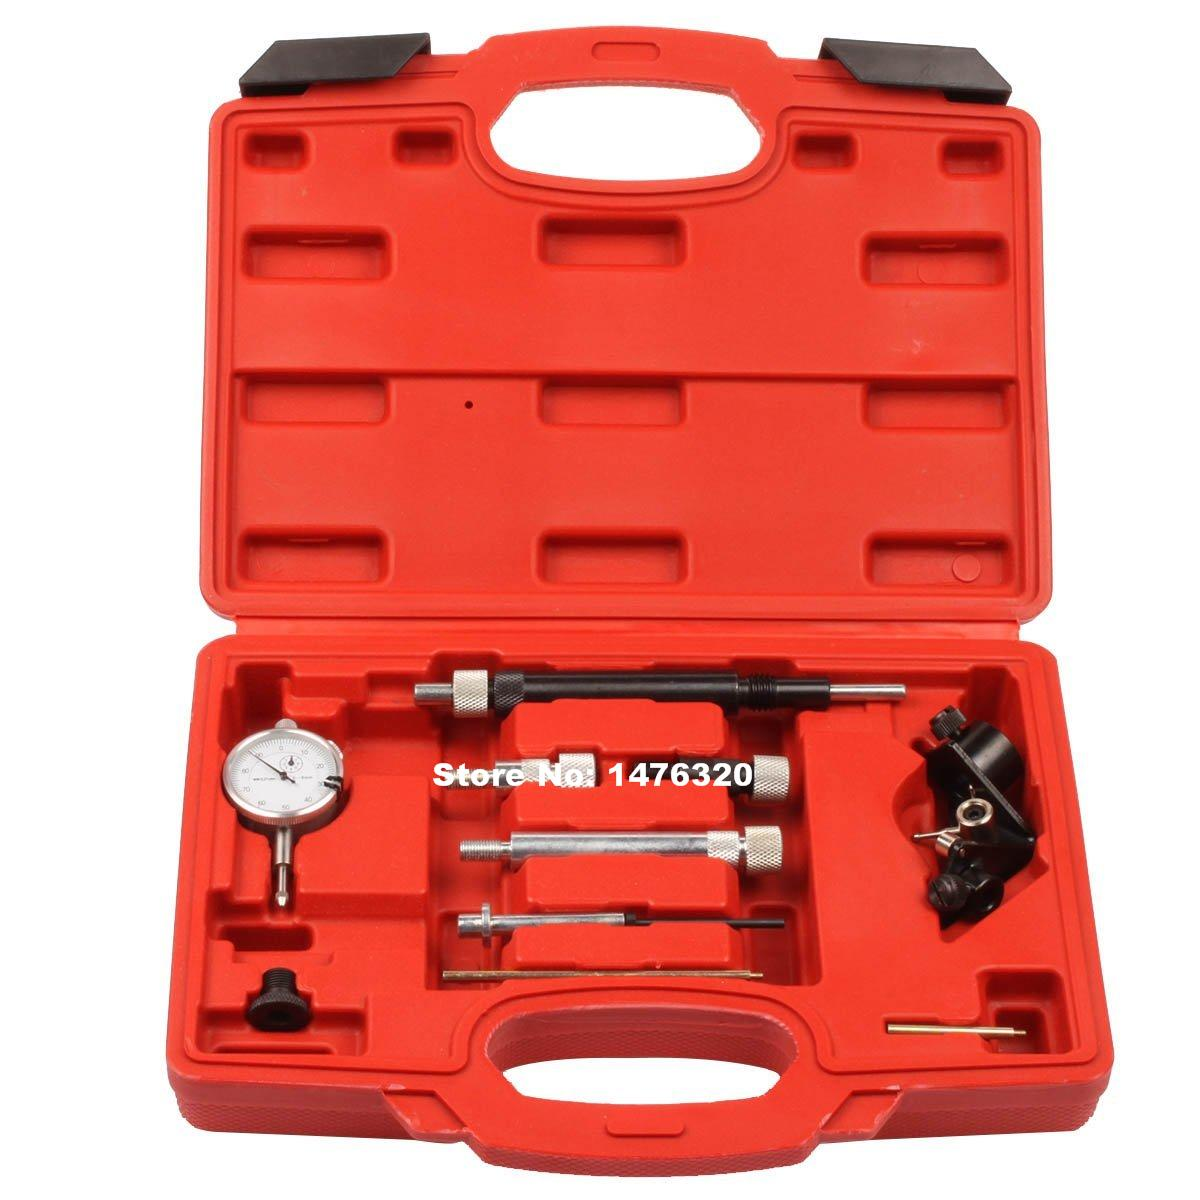 ФОТО Automotive Engine Diesel Fuel Injection Pump Timing Diagnostic Tester Indicator Gauge Tool Kit AT2175